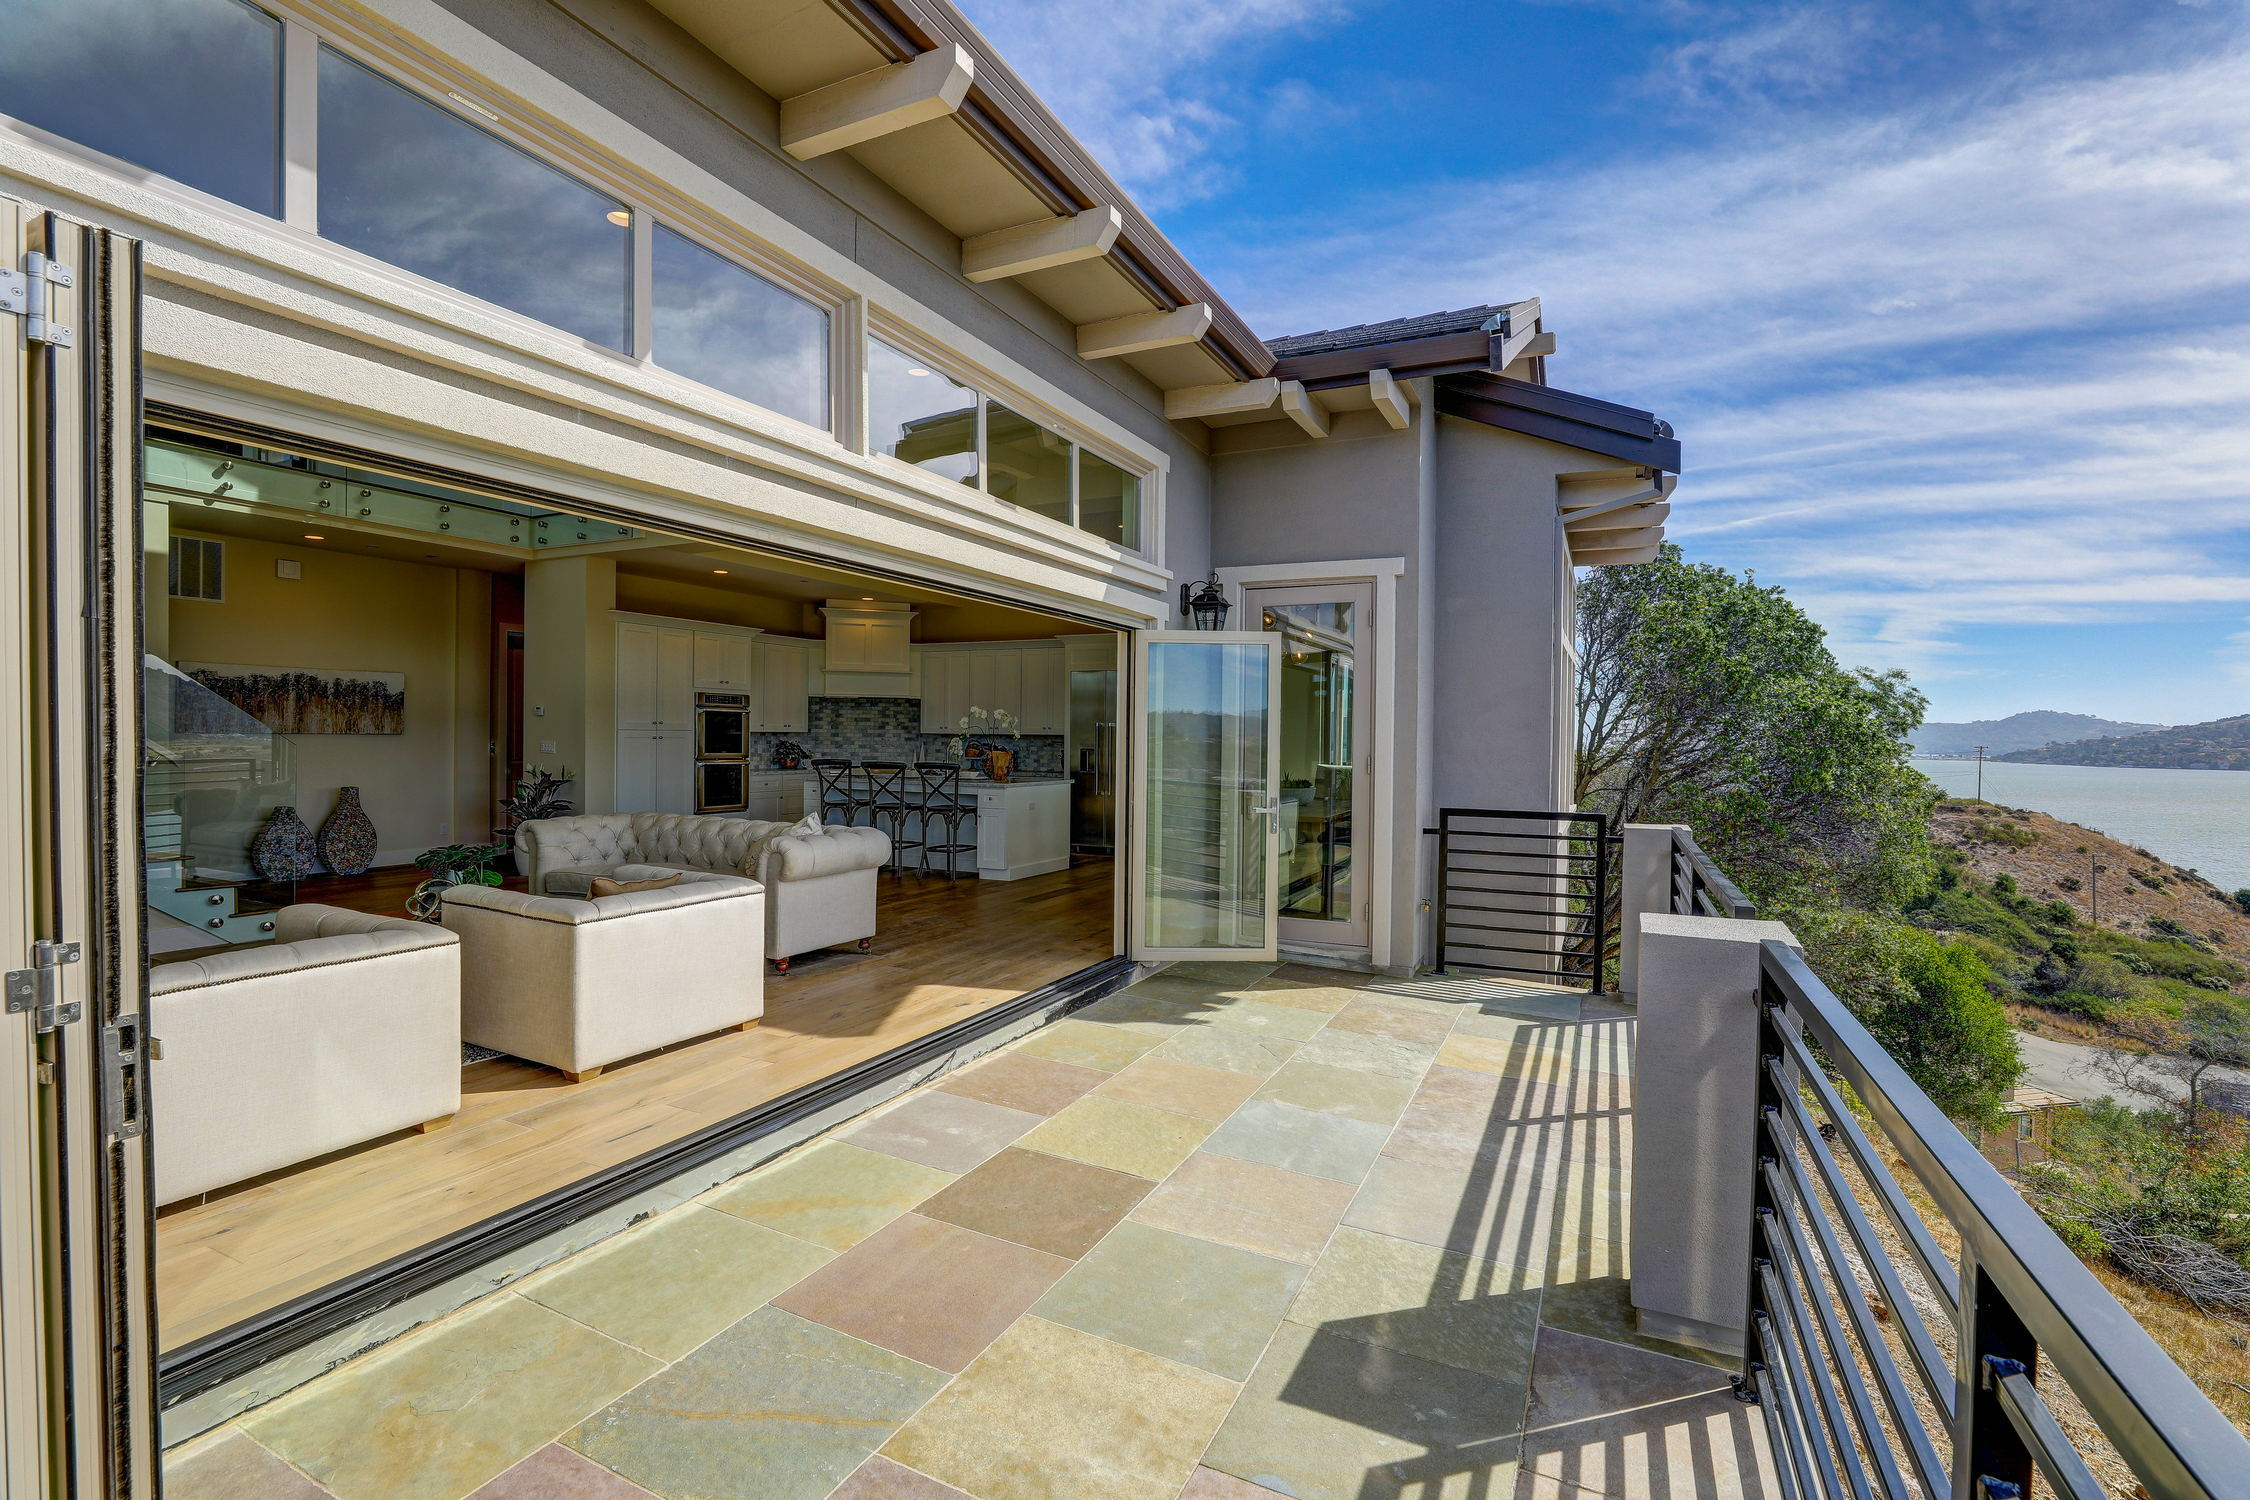 31 Drakes Cove, Larkspur Homes for Sale26 MLS - Own Marin with Compass - Mill Valley Realtor.jpg